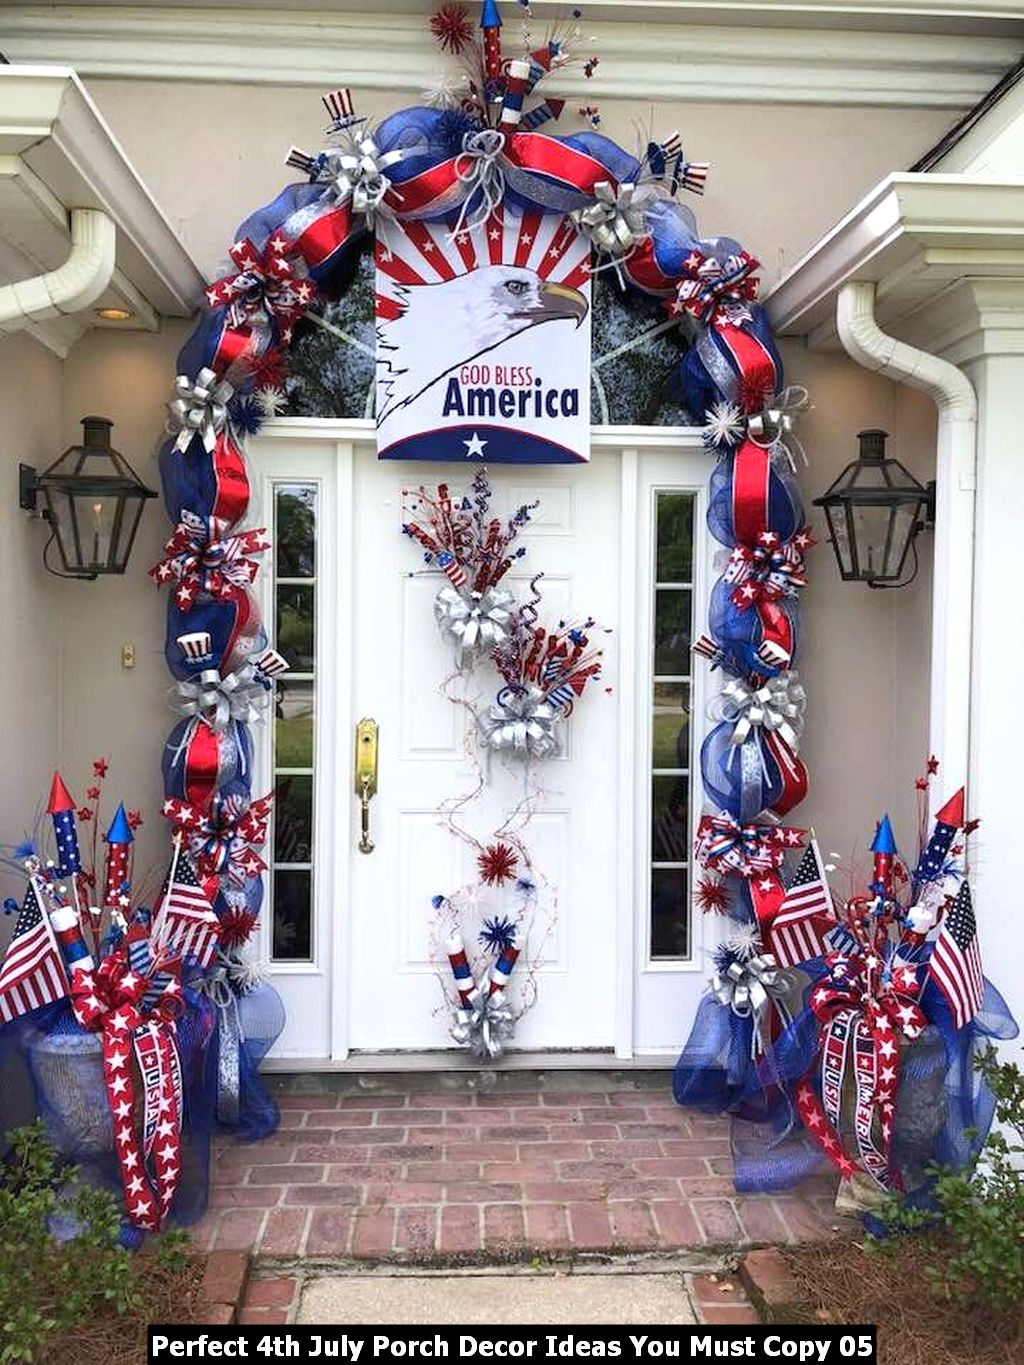 Perfect 4th July Porch Decor Ideas You Must Copy 05